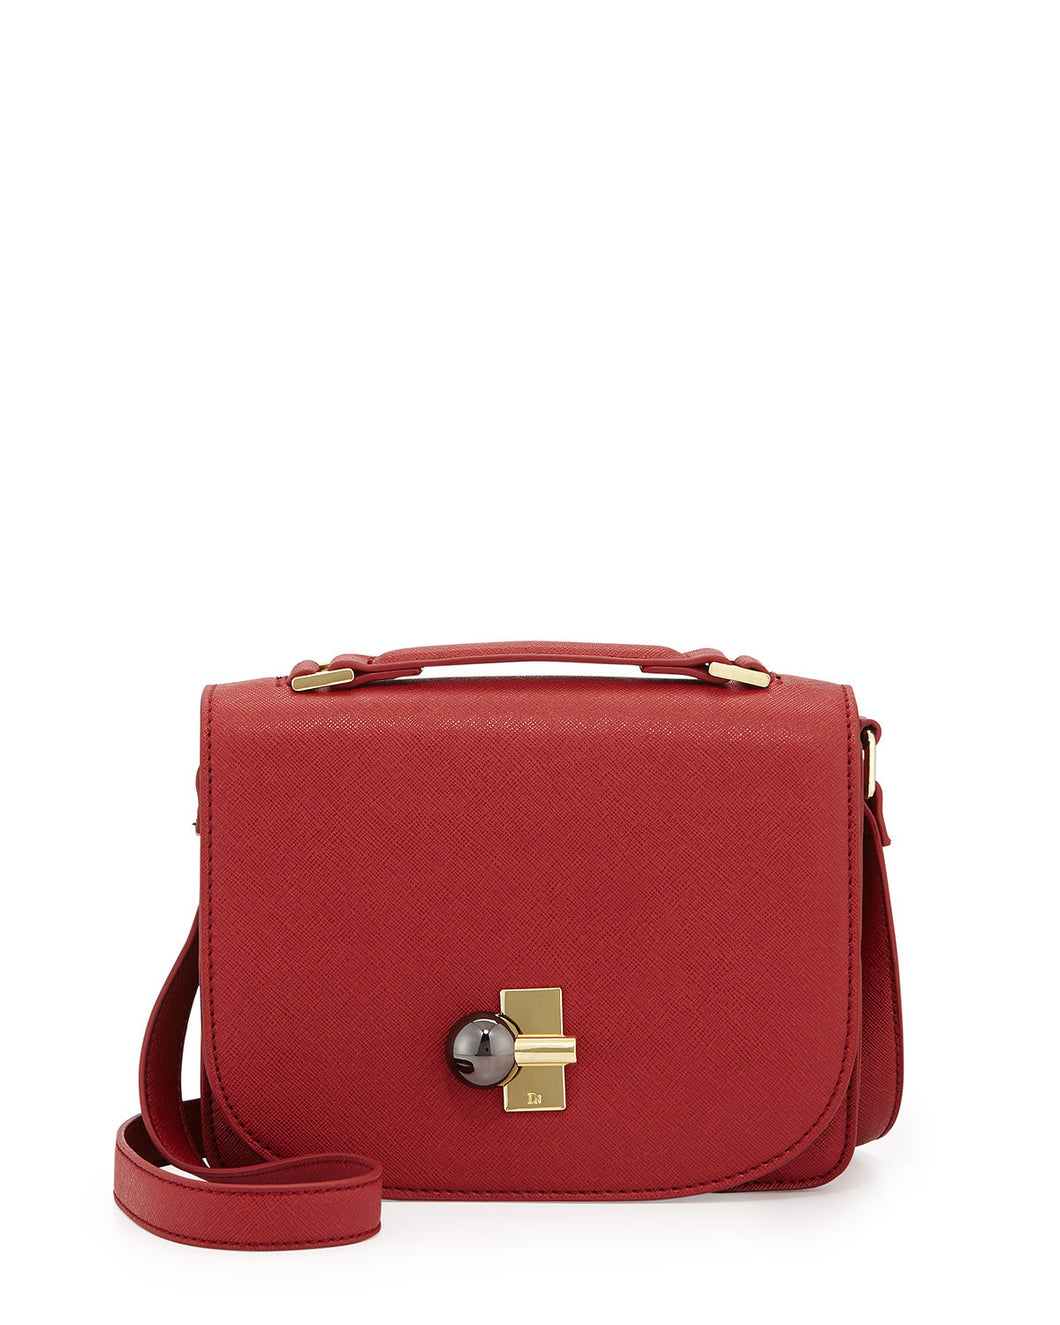 Danielle Nicole Penelope Crossbody Bag Red